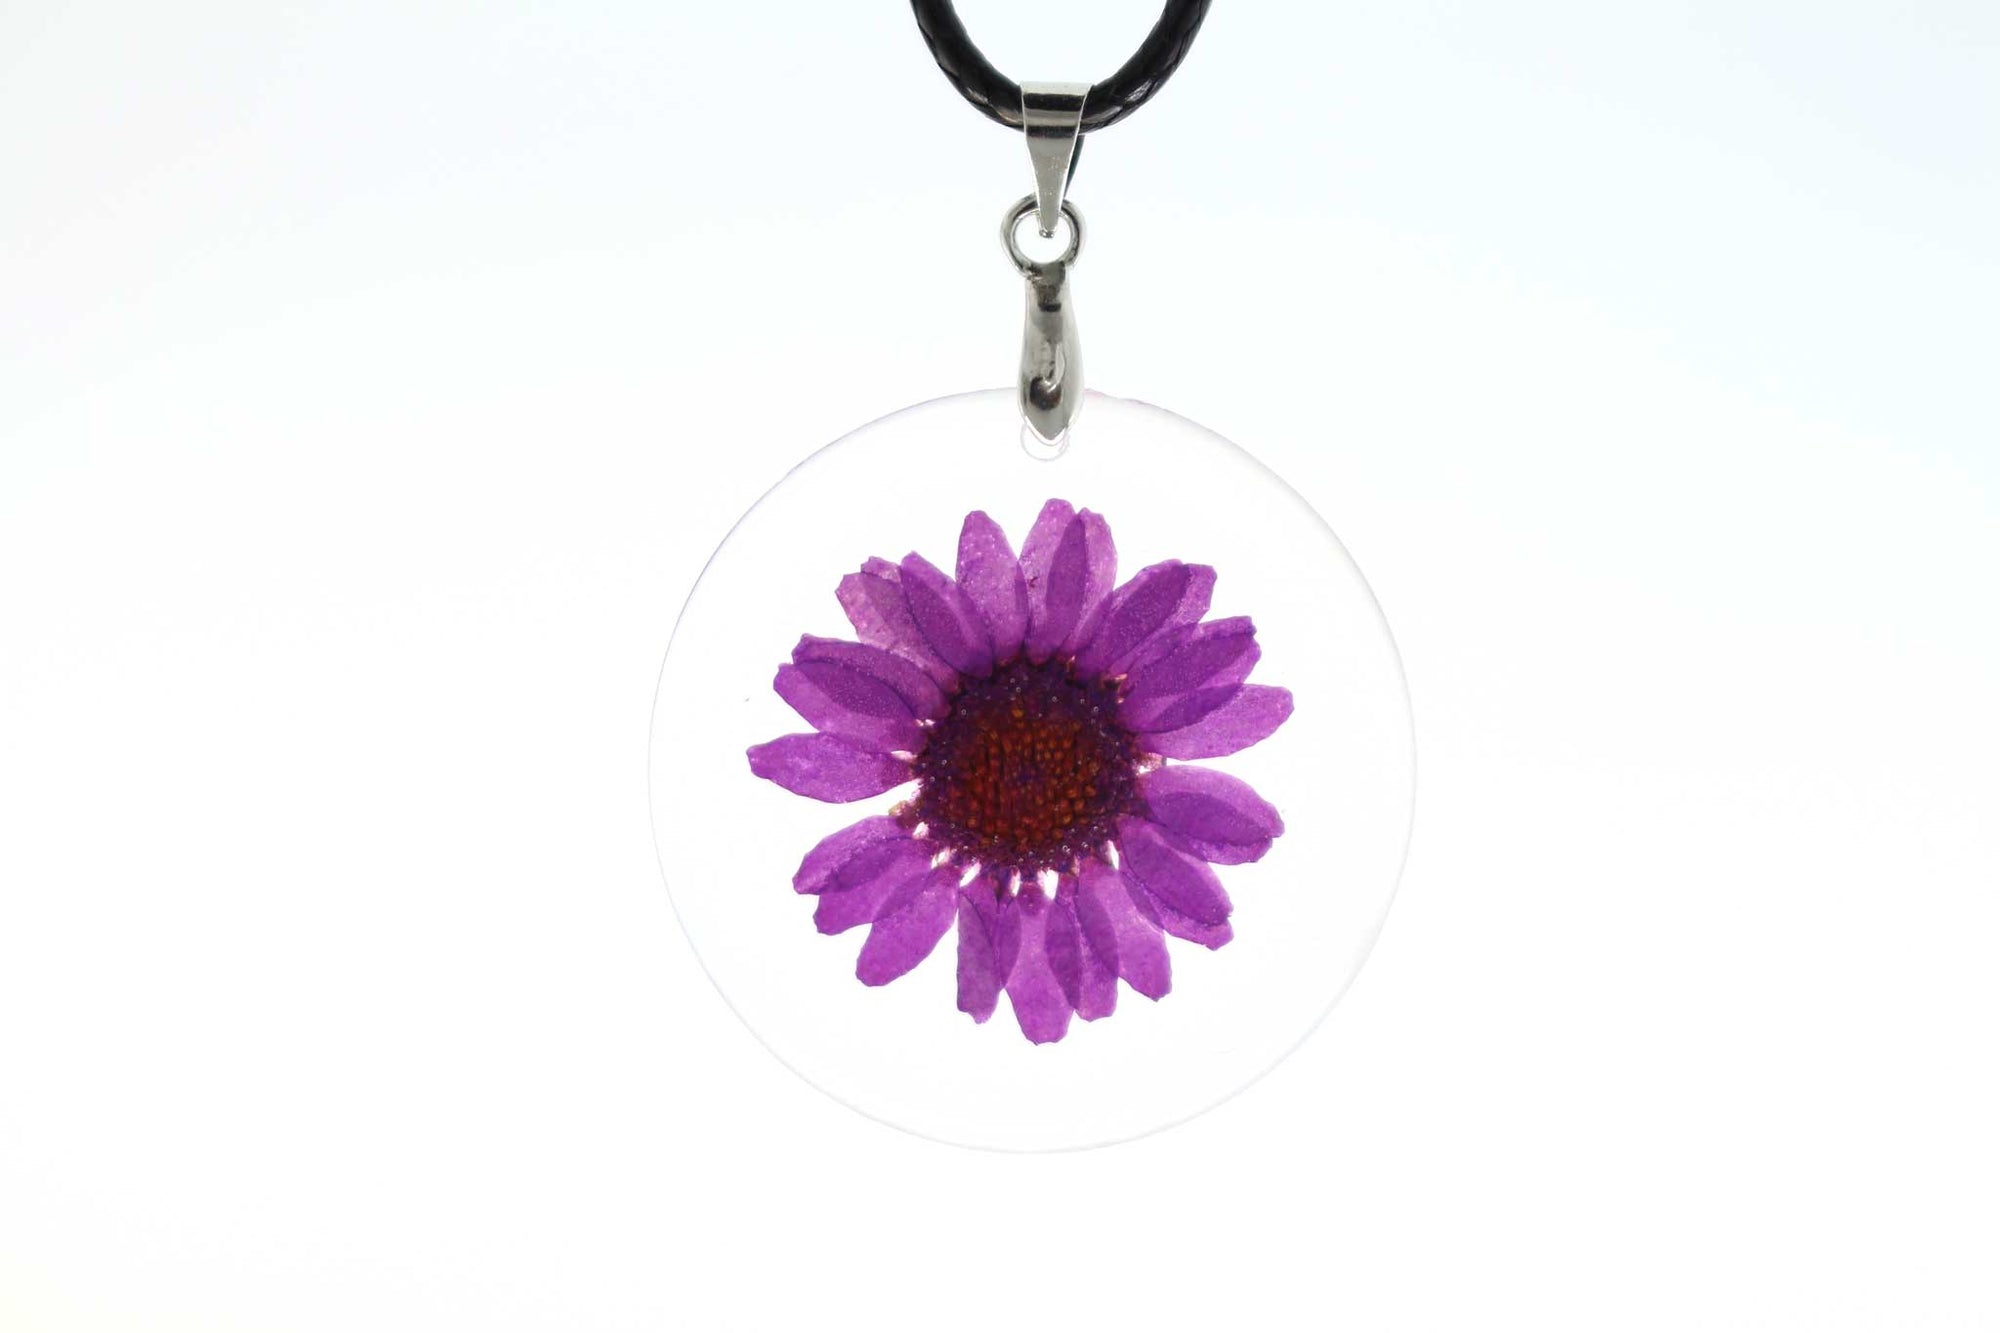 Real Daisy Flower Necklace In Purple - Arborvita